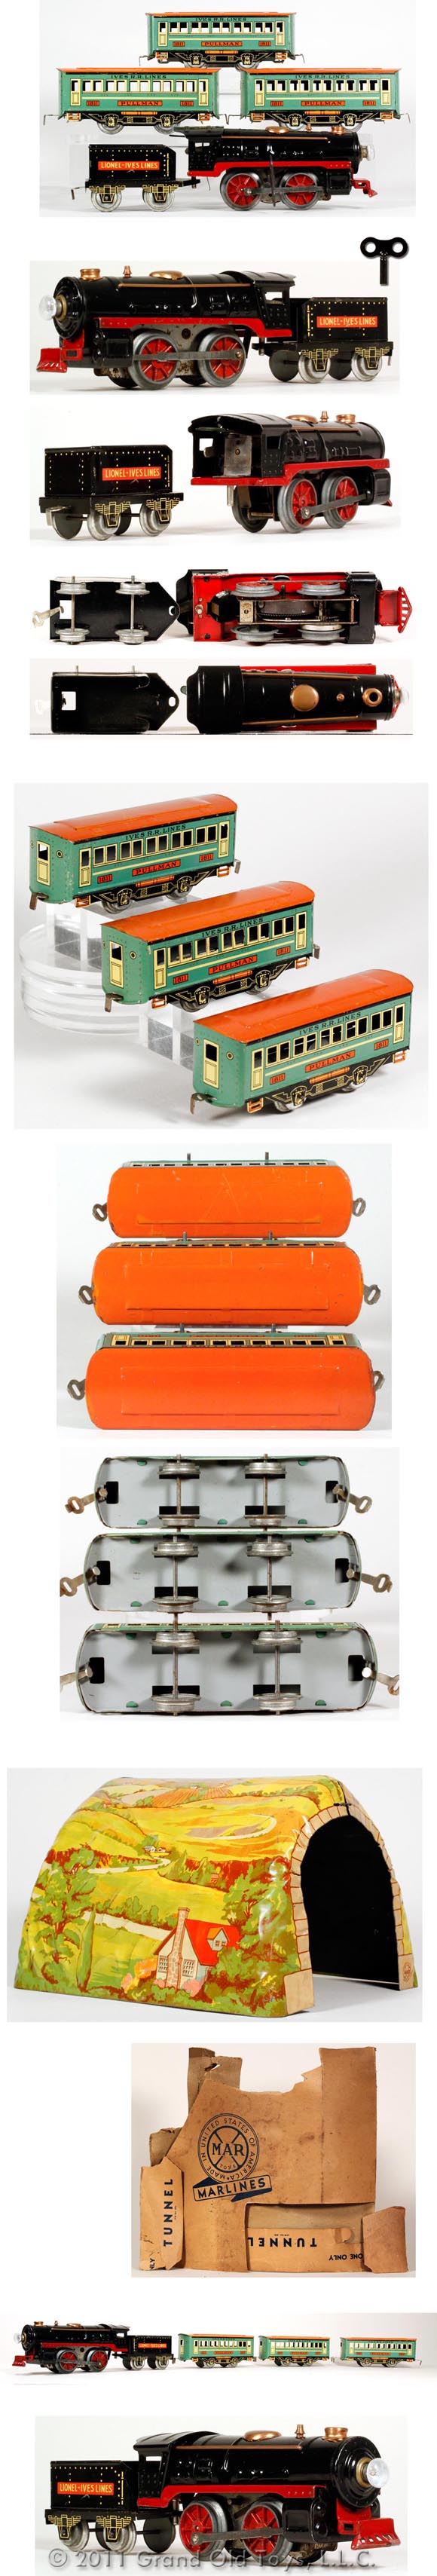 1933 Lionel Ives 5pc Mechanical Train Set